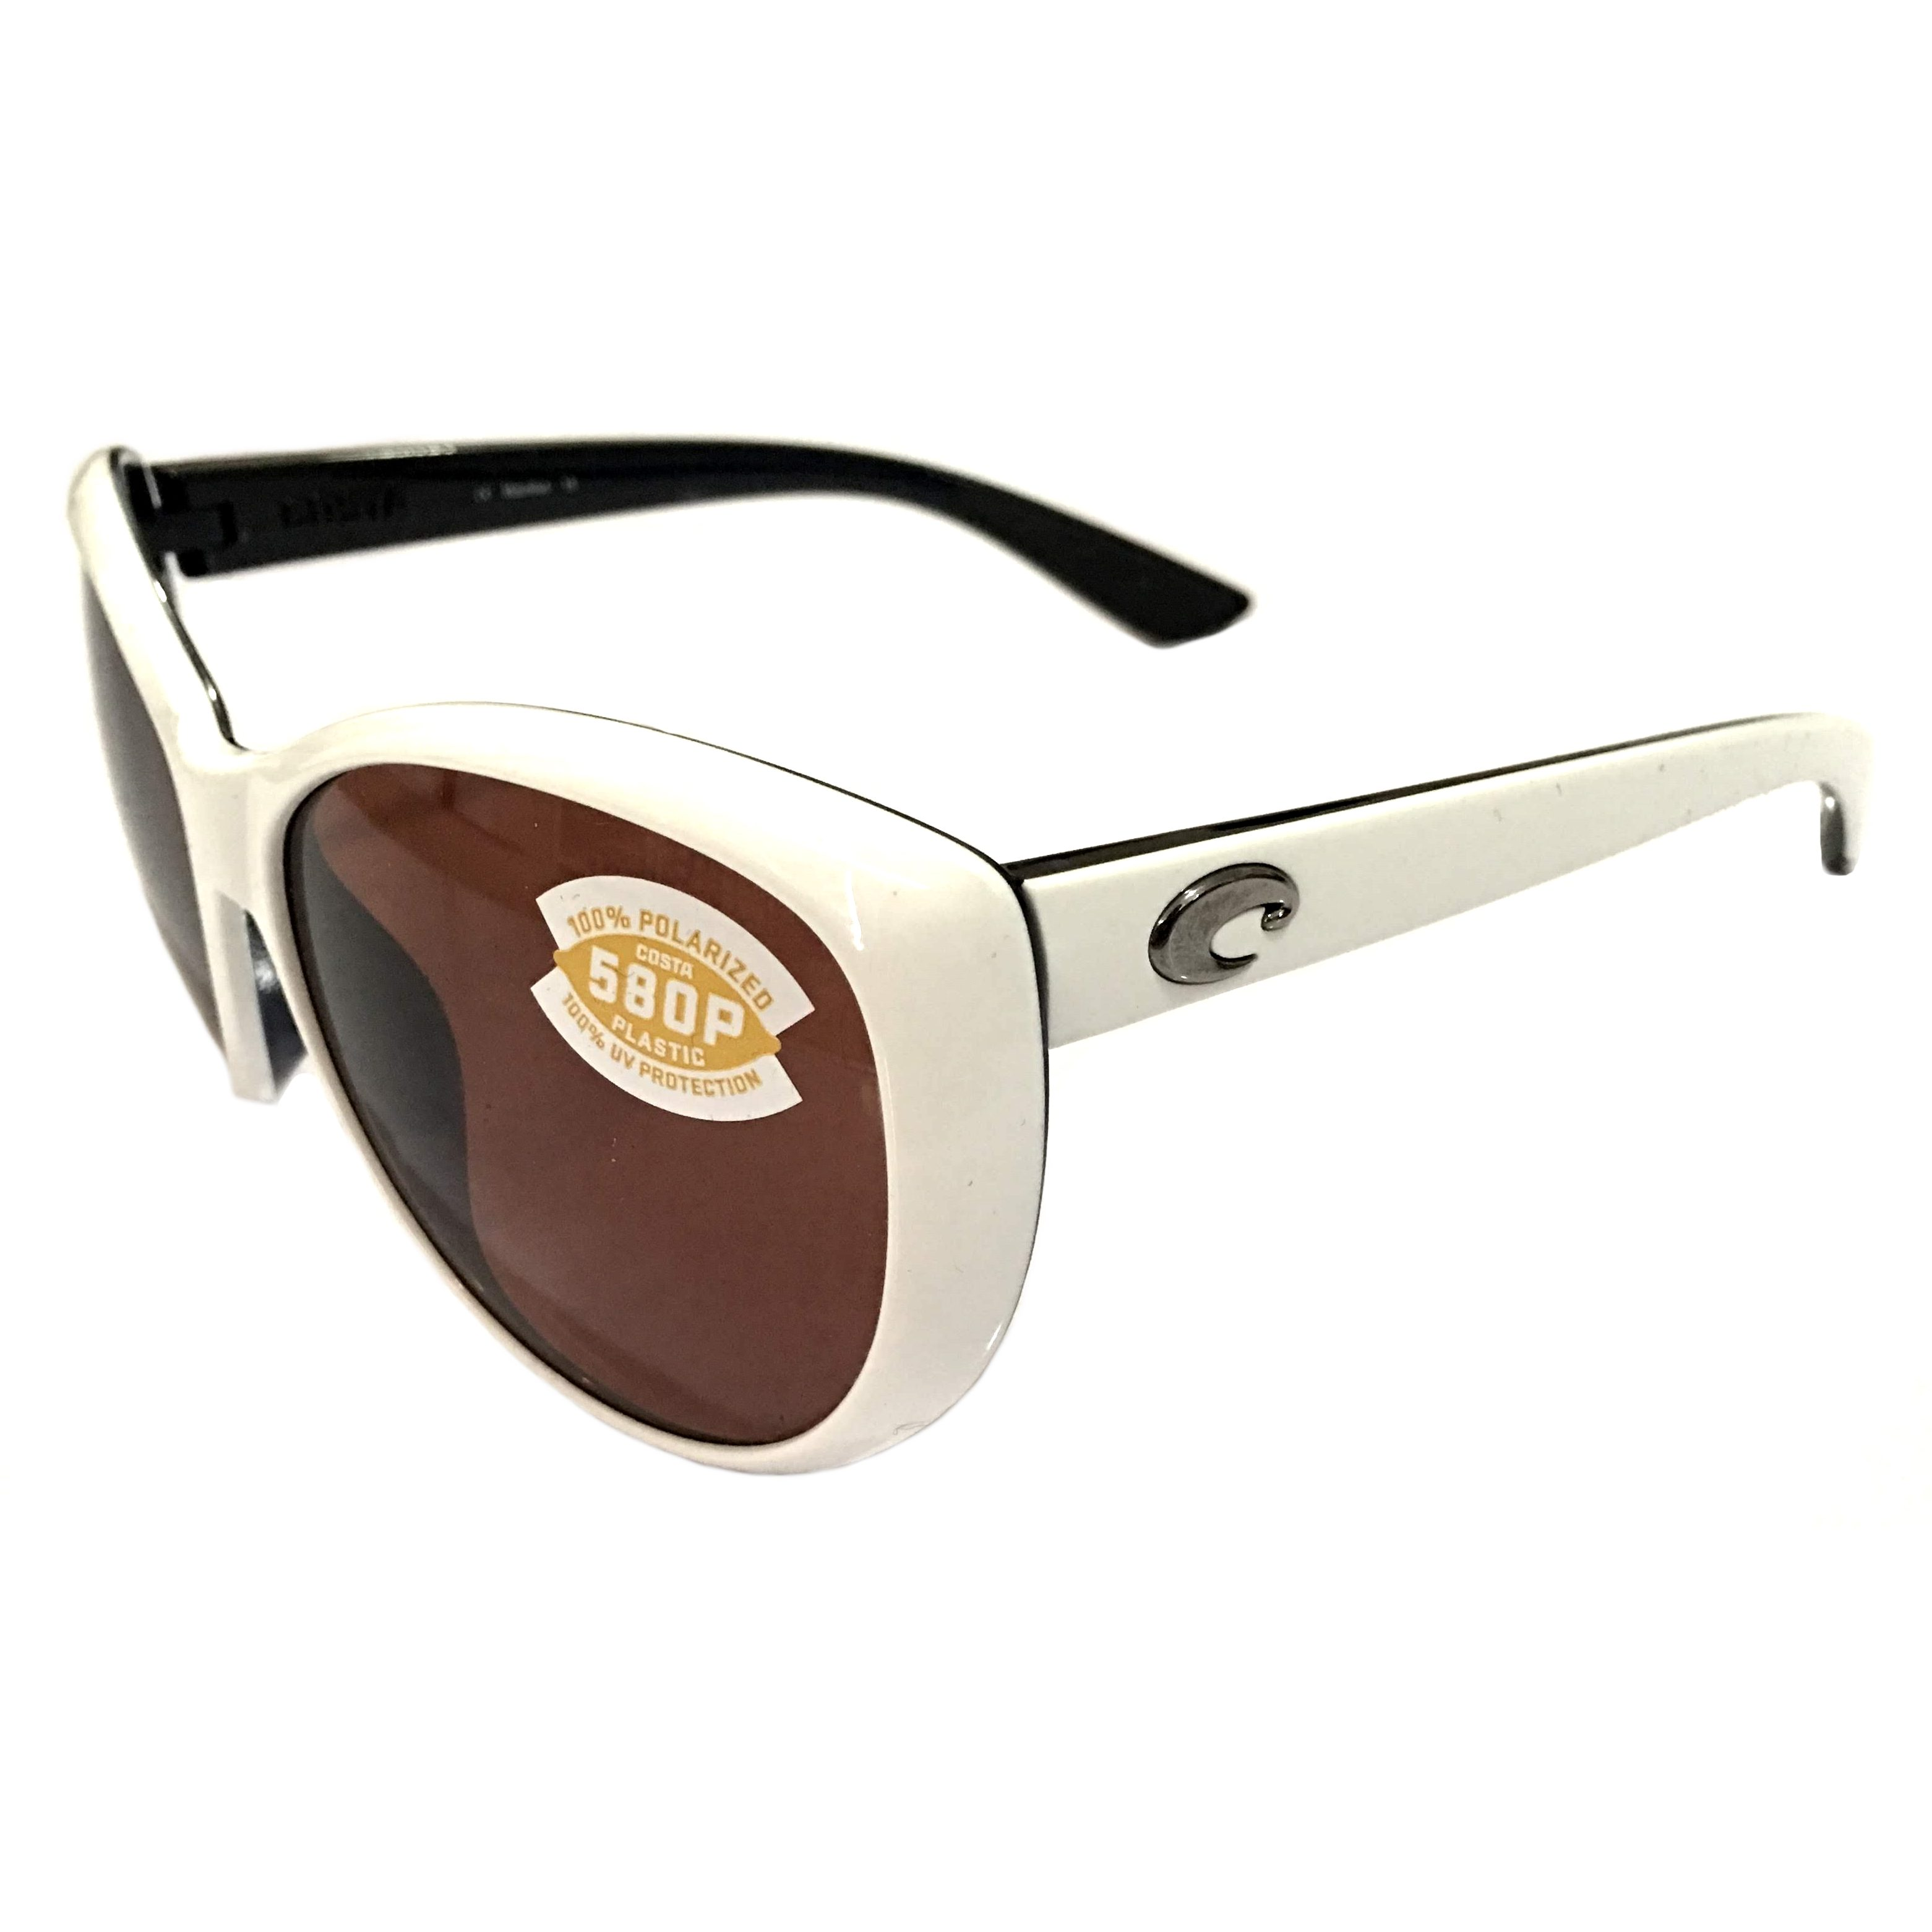 ea7ce348a3 Costa Del Mar La Mar Sunglasses – White   Topaz Frame – Polarized ...